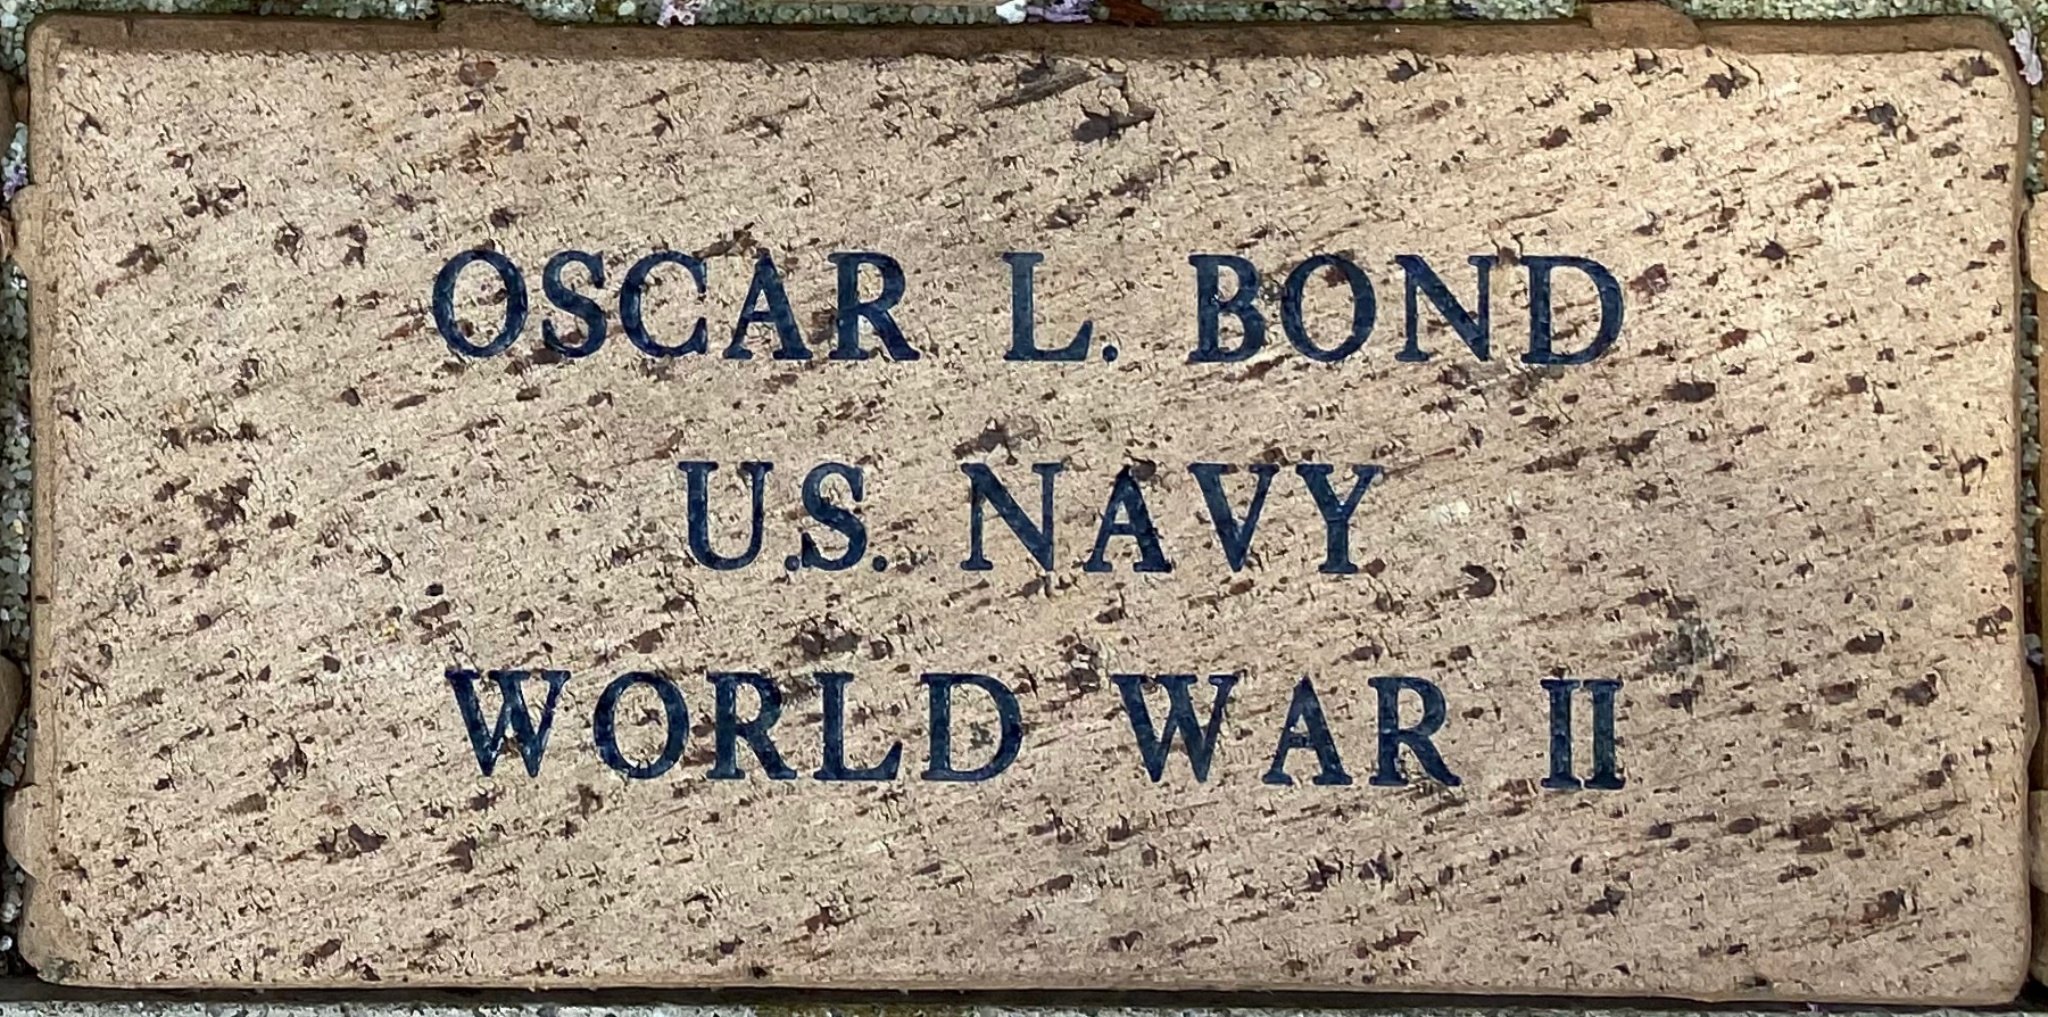 OSCAR L. BOND U.S. NAVY WORLD WAR II